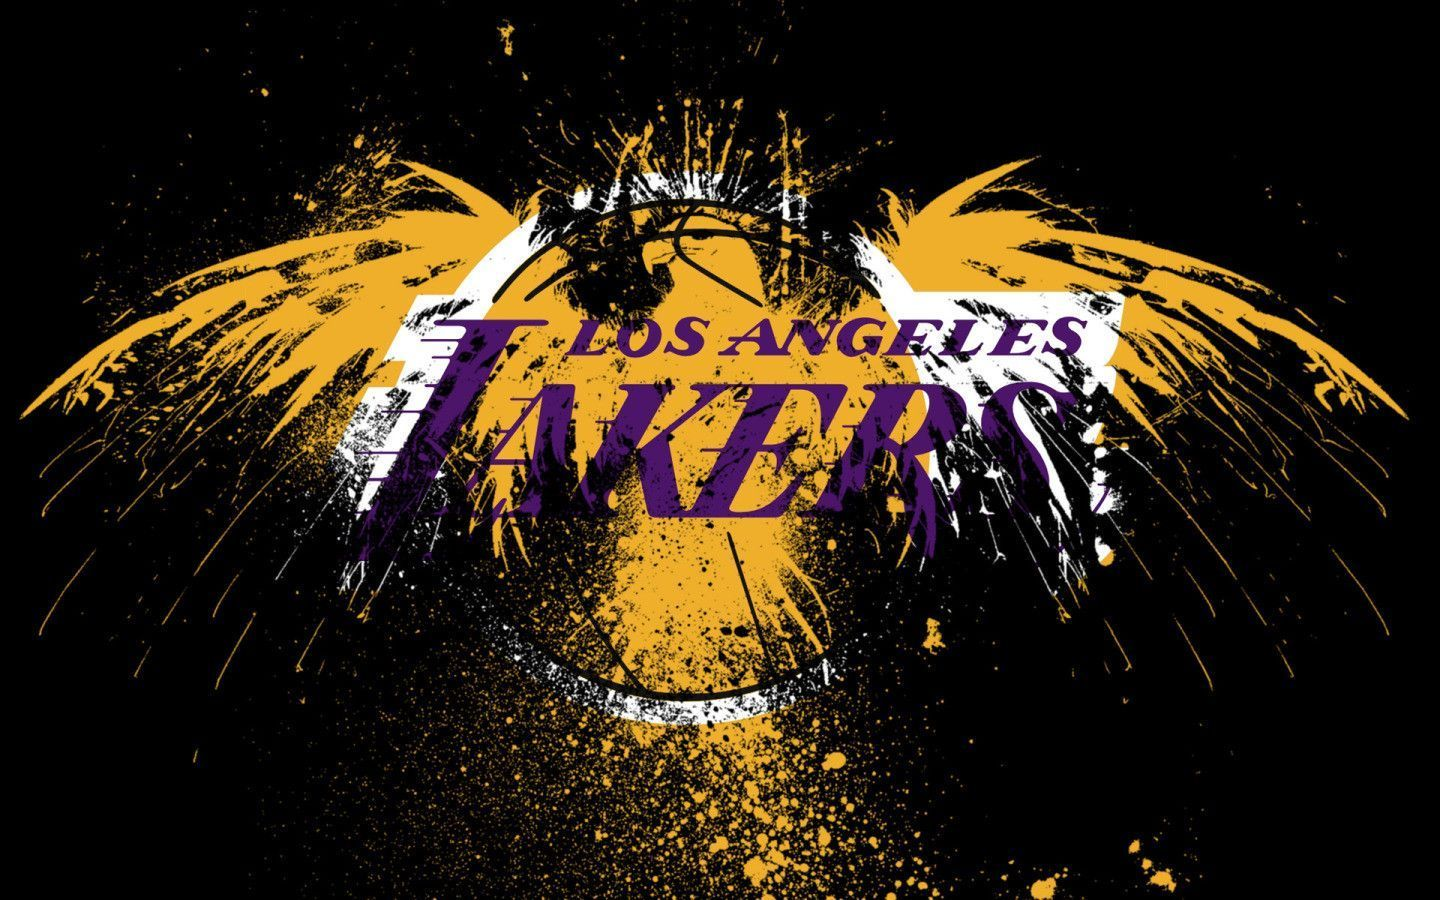 Los Angeles Lakers Wallpapers Wallpaper Cave Lakers Wallpaper Los Angeles Lakers Logo Los Angeles Lakers